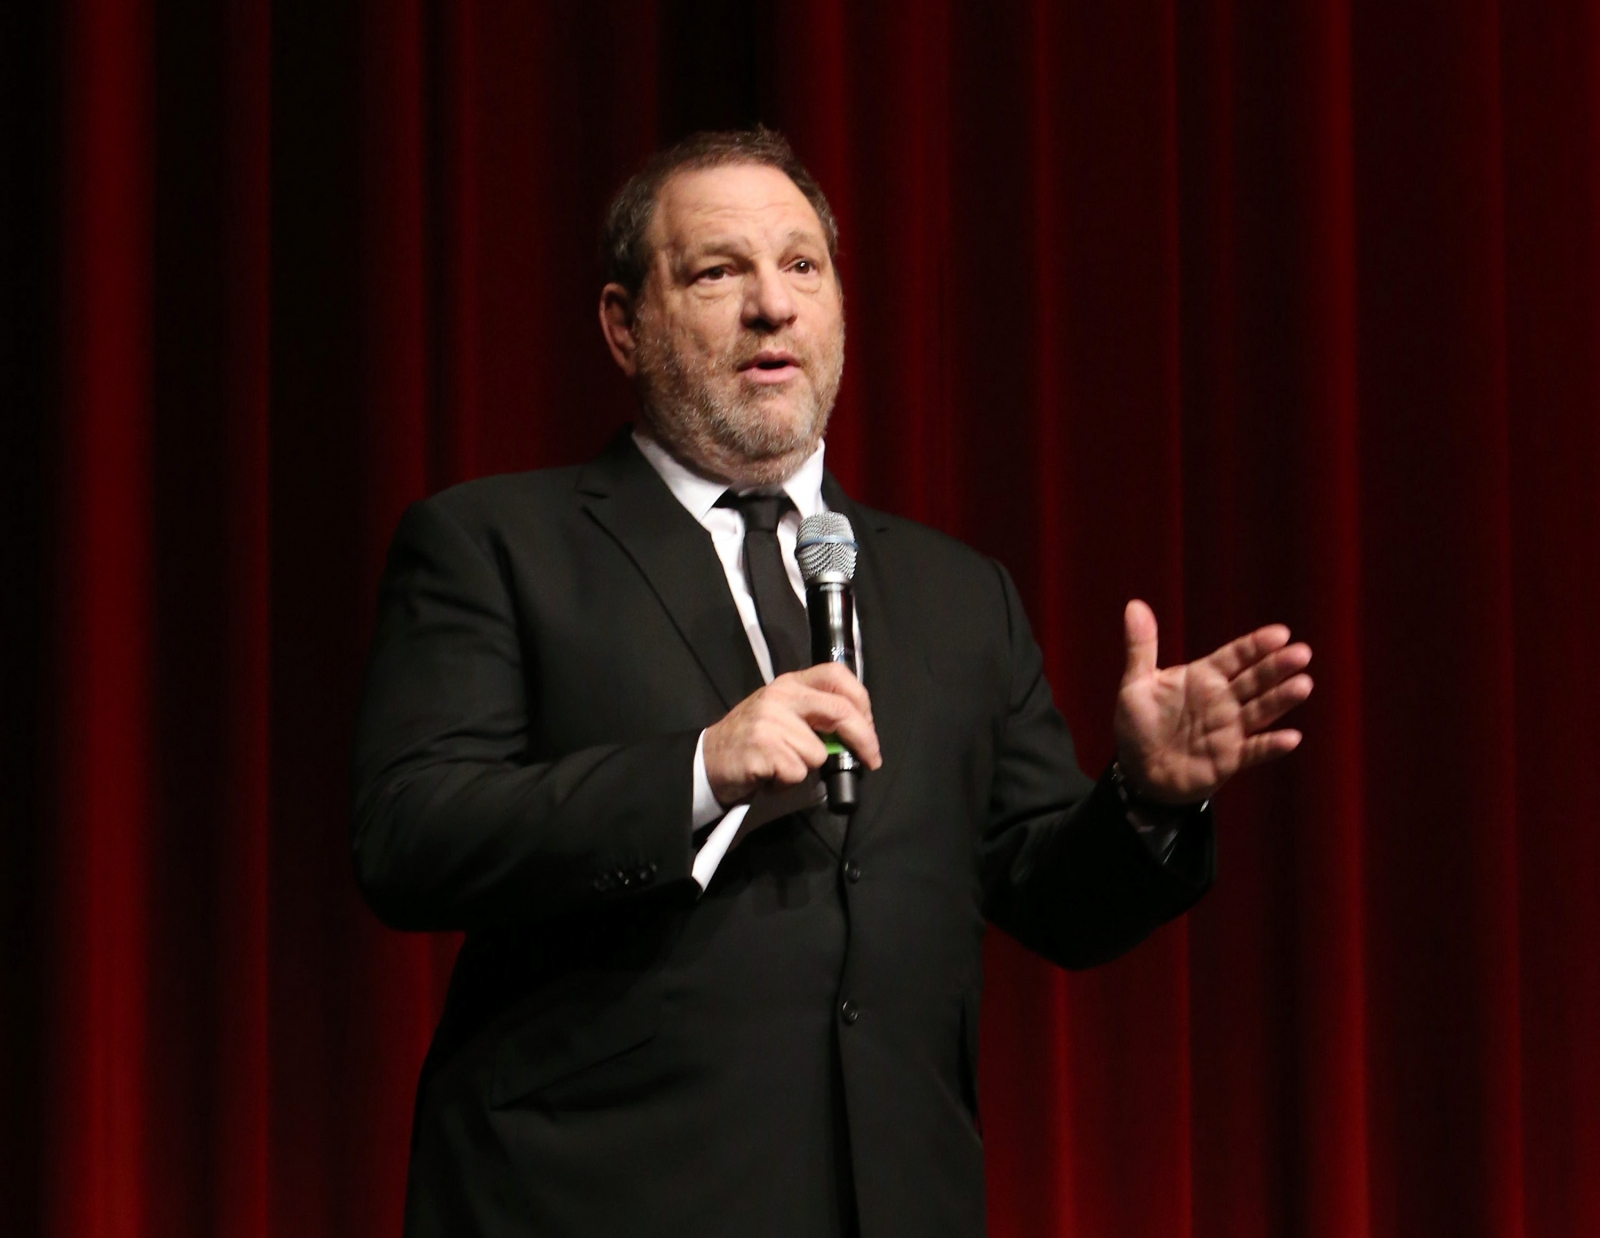 harvey-weinstein-fired-from-his-own-company-after-harassment-claims